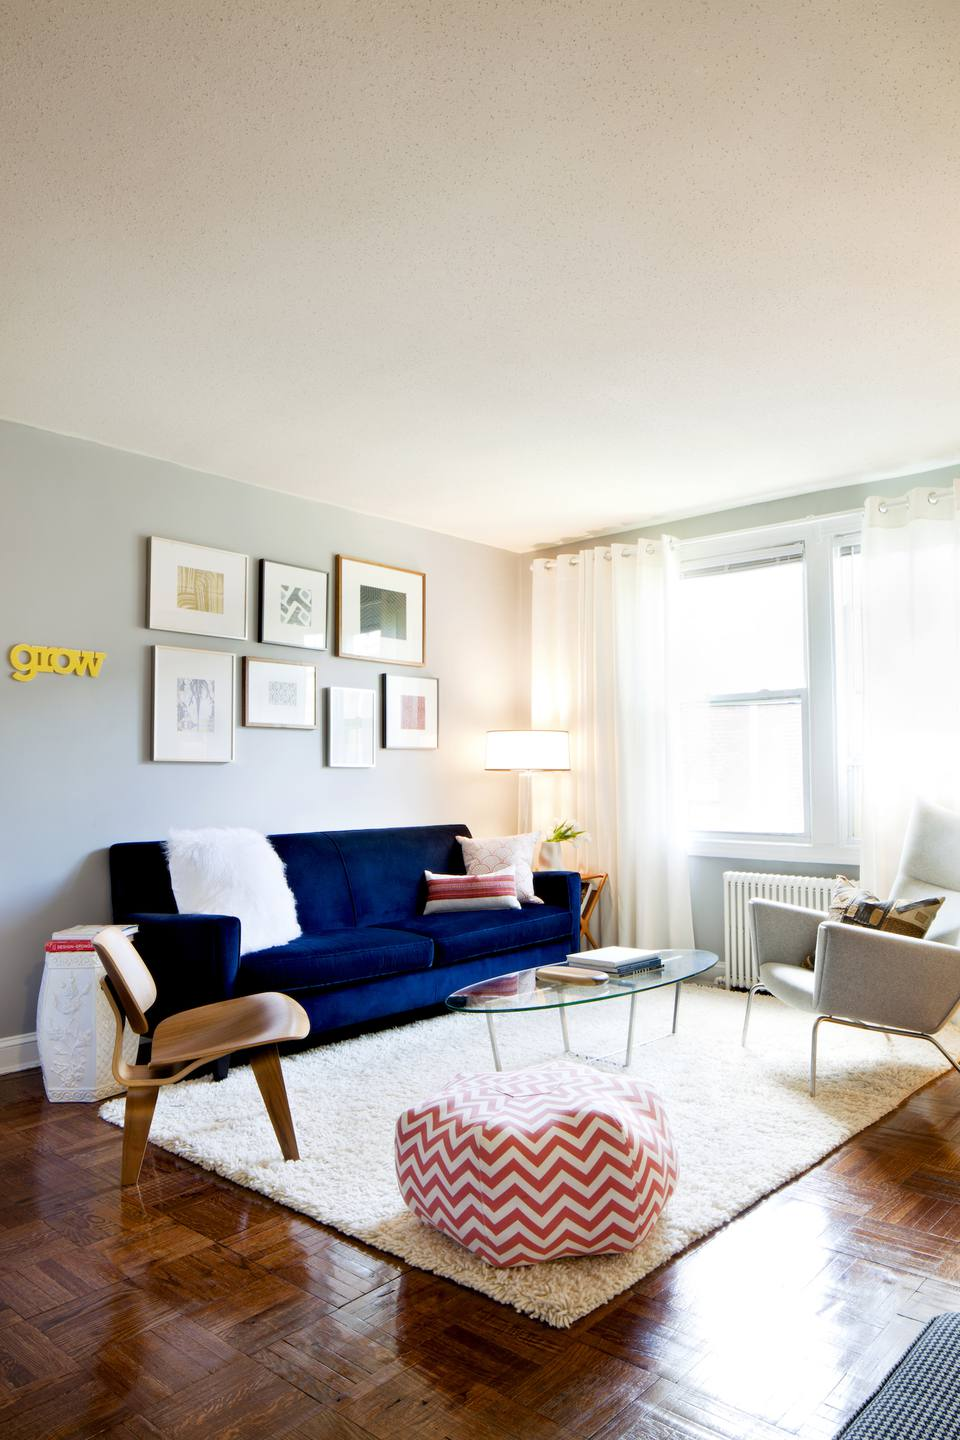 House Tour: Designer Small Space Living in Washington DC